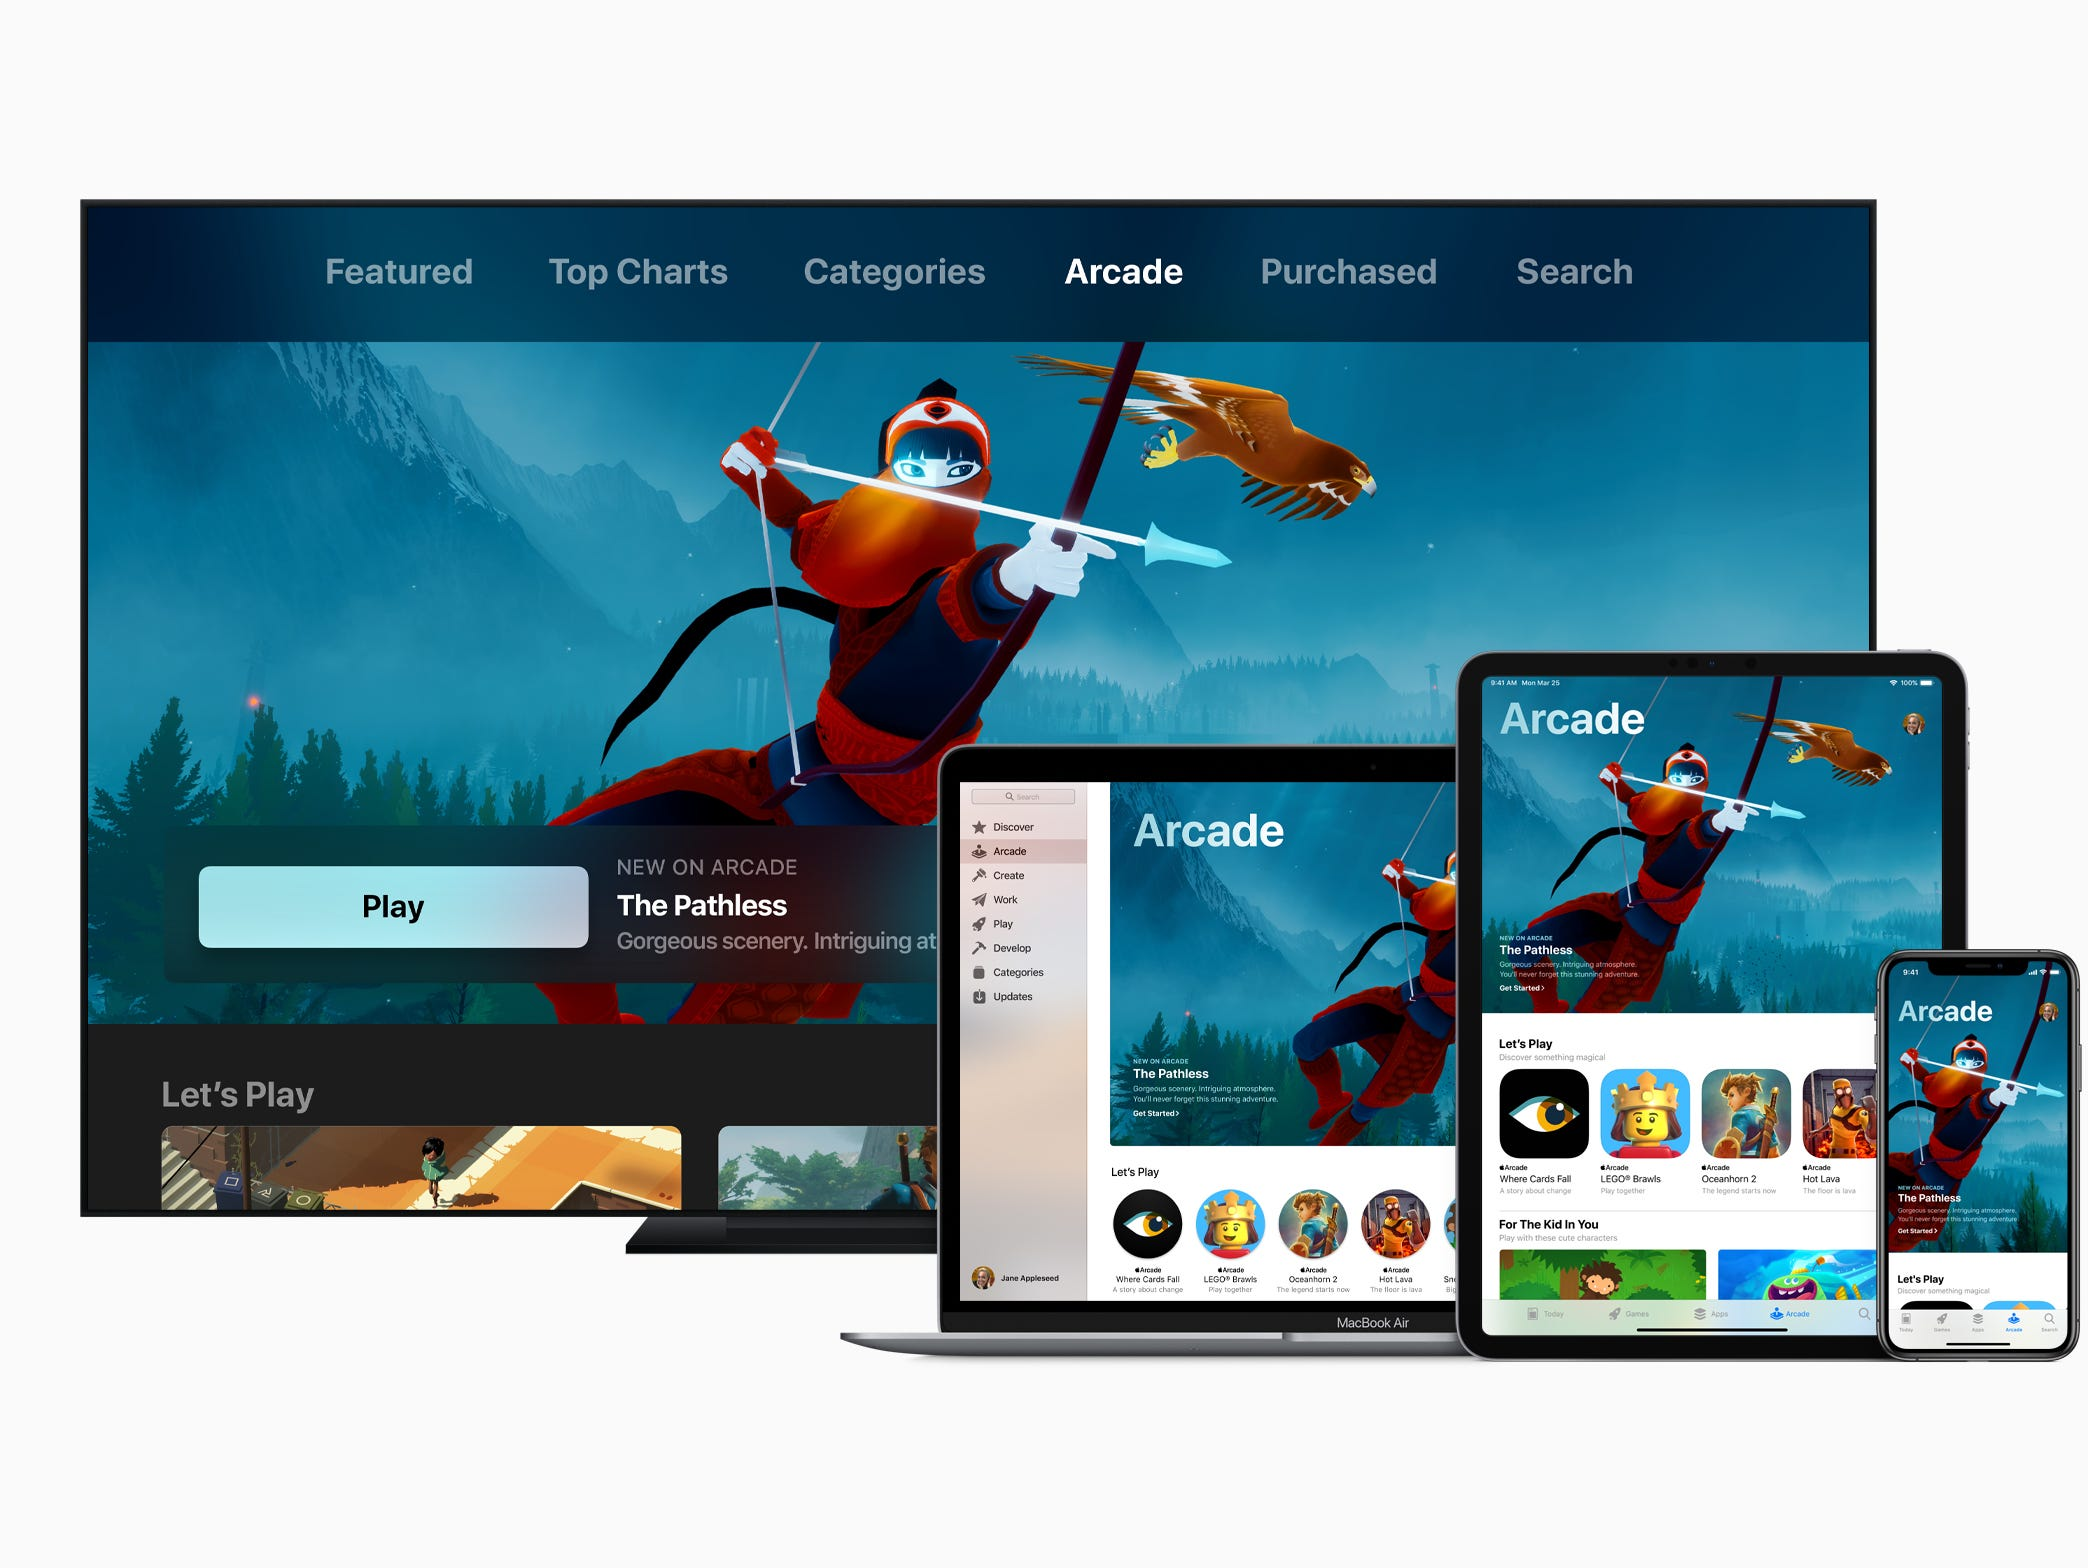 Apple Arcade brings Apple into gaming with new subscription service